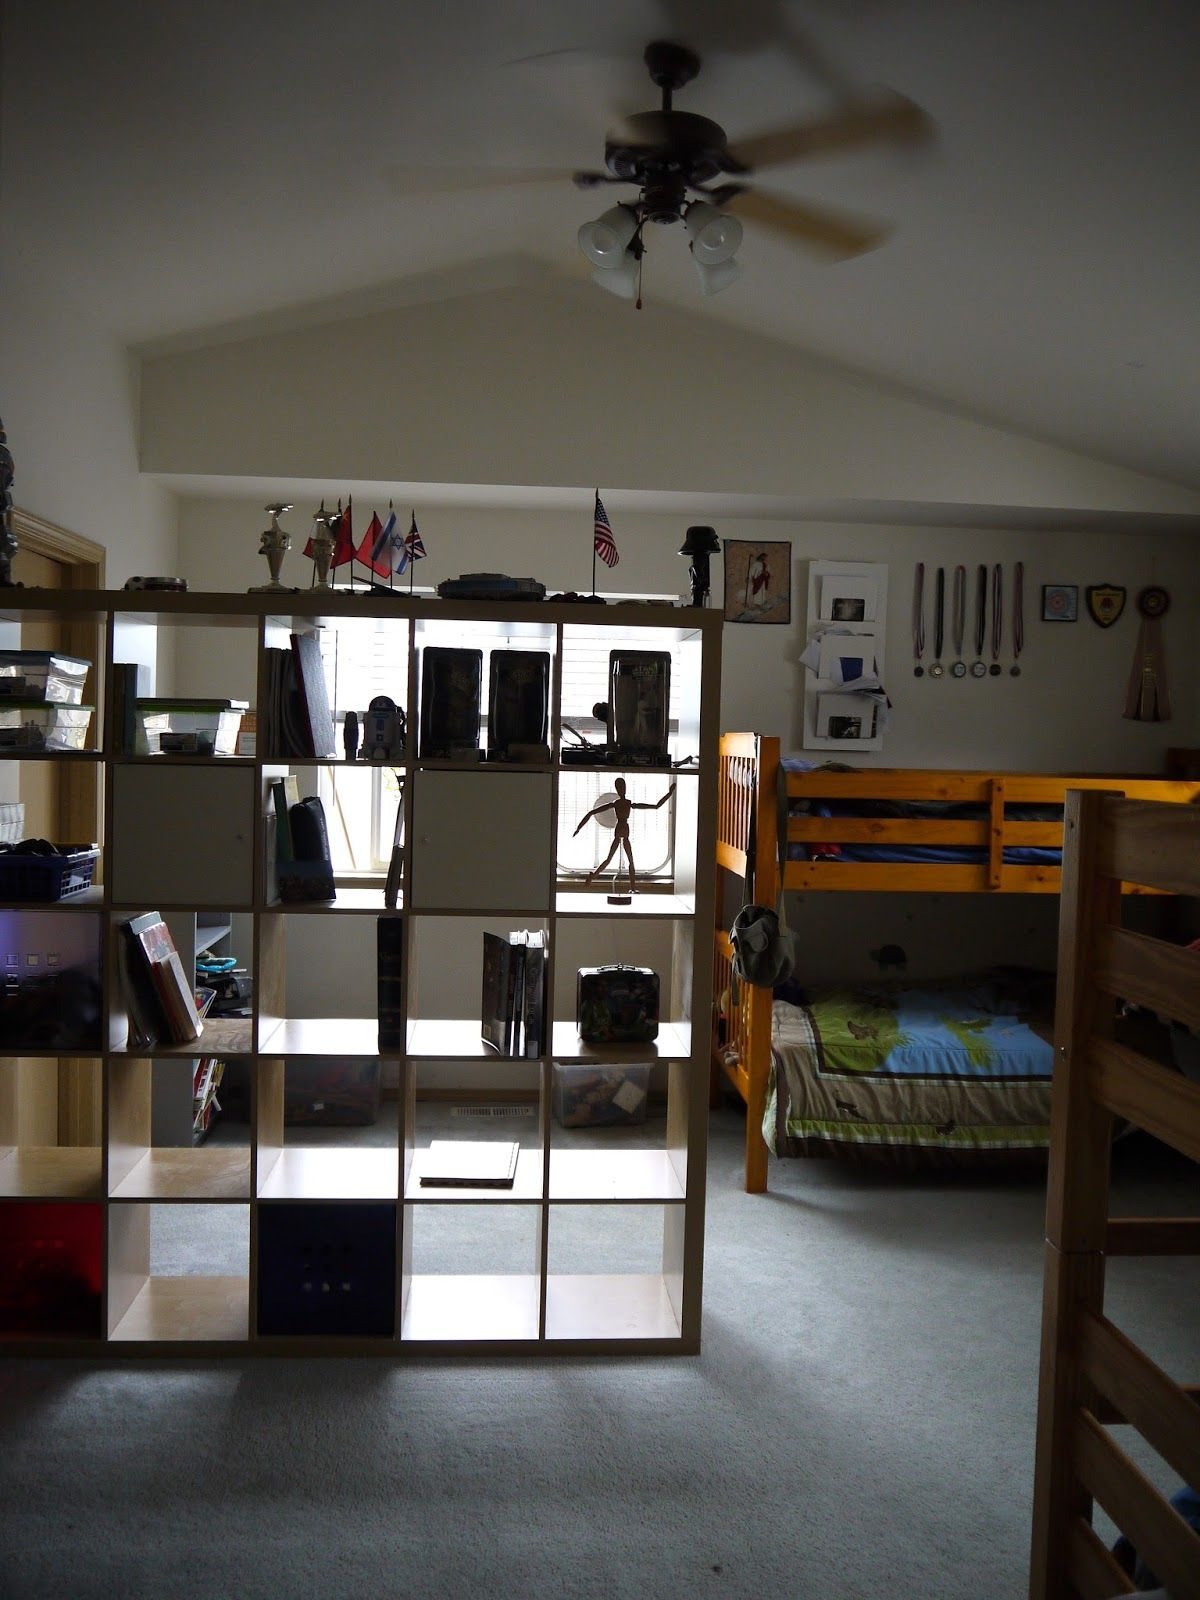 Pin By Lindy Hafner On Tiny House Minimalism Kids Shared Bedroom Small House Living Large Family Organization